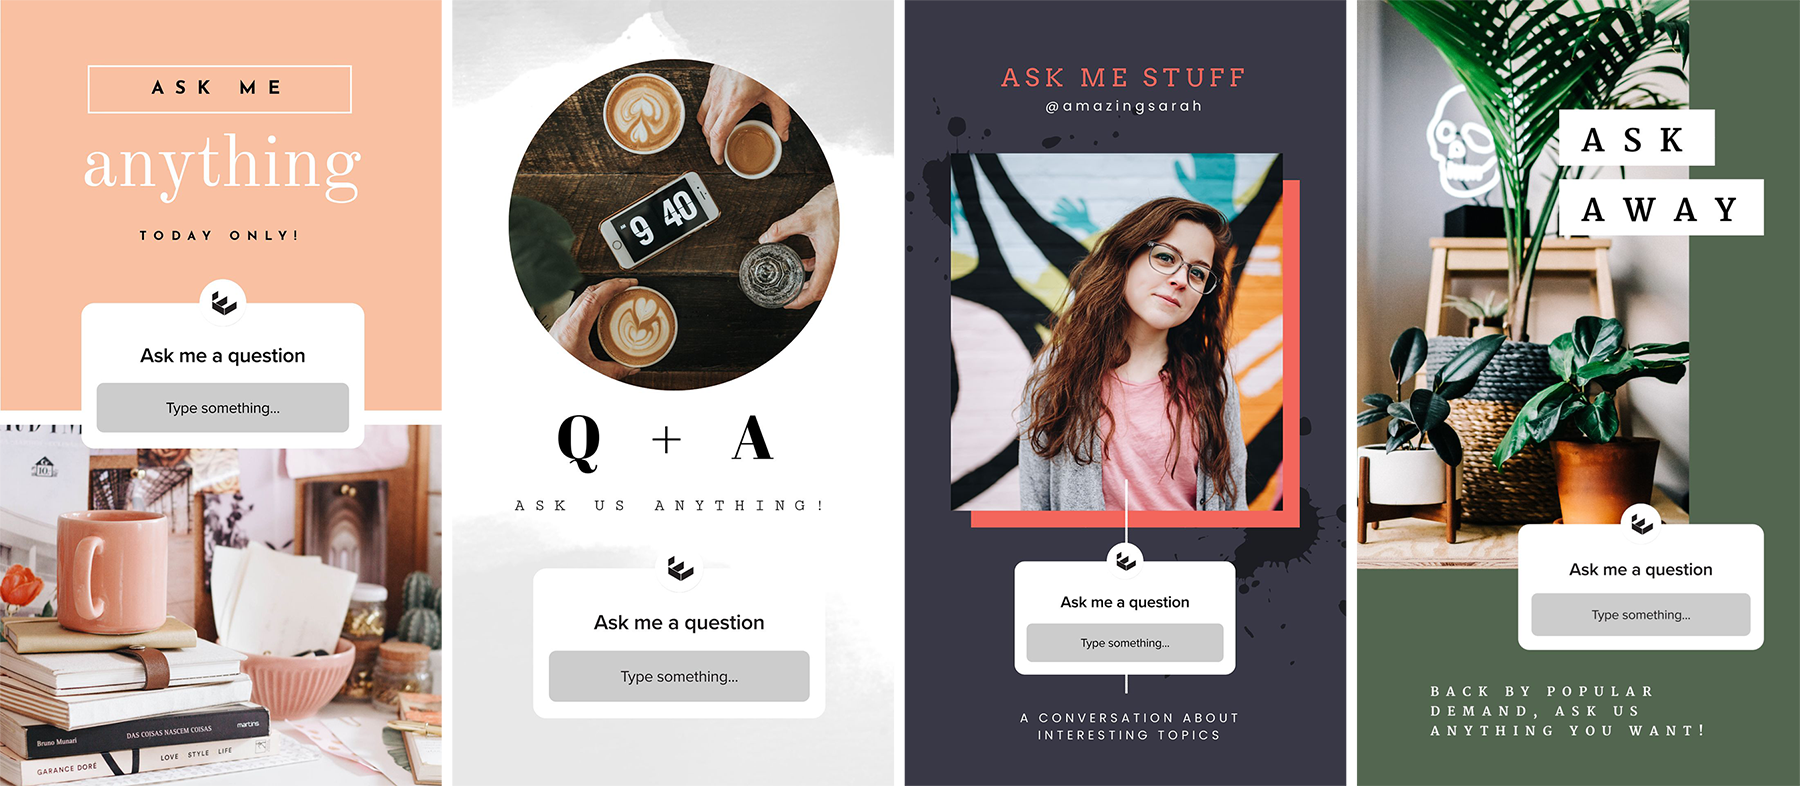 Ask Me Anything Templates for Instagram Stories - How to use Instagram Story Templates - 5 Examples to Boost Engagement